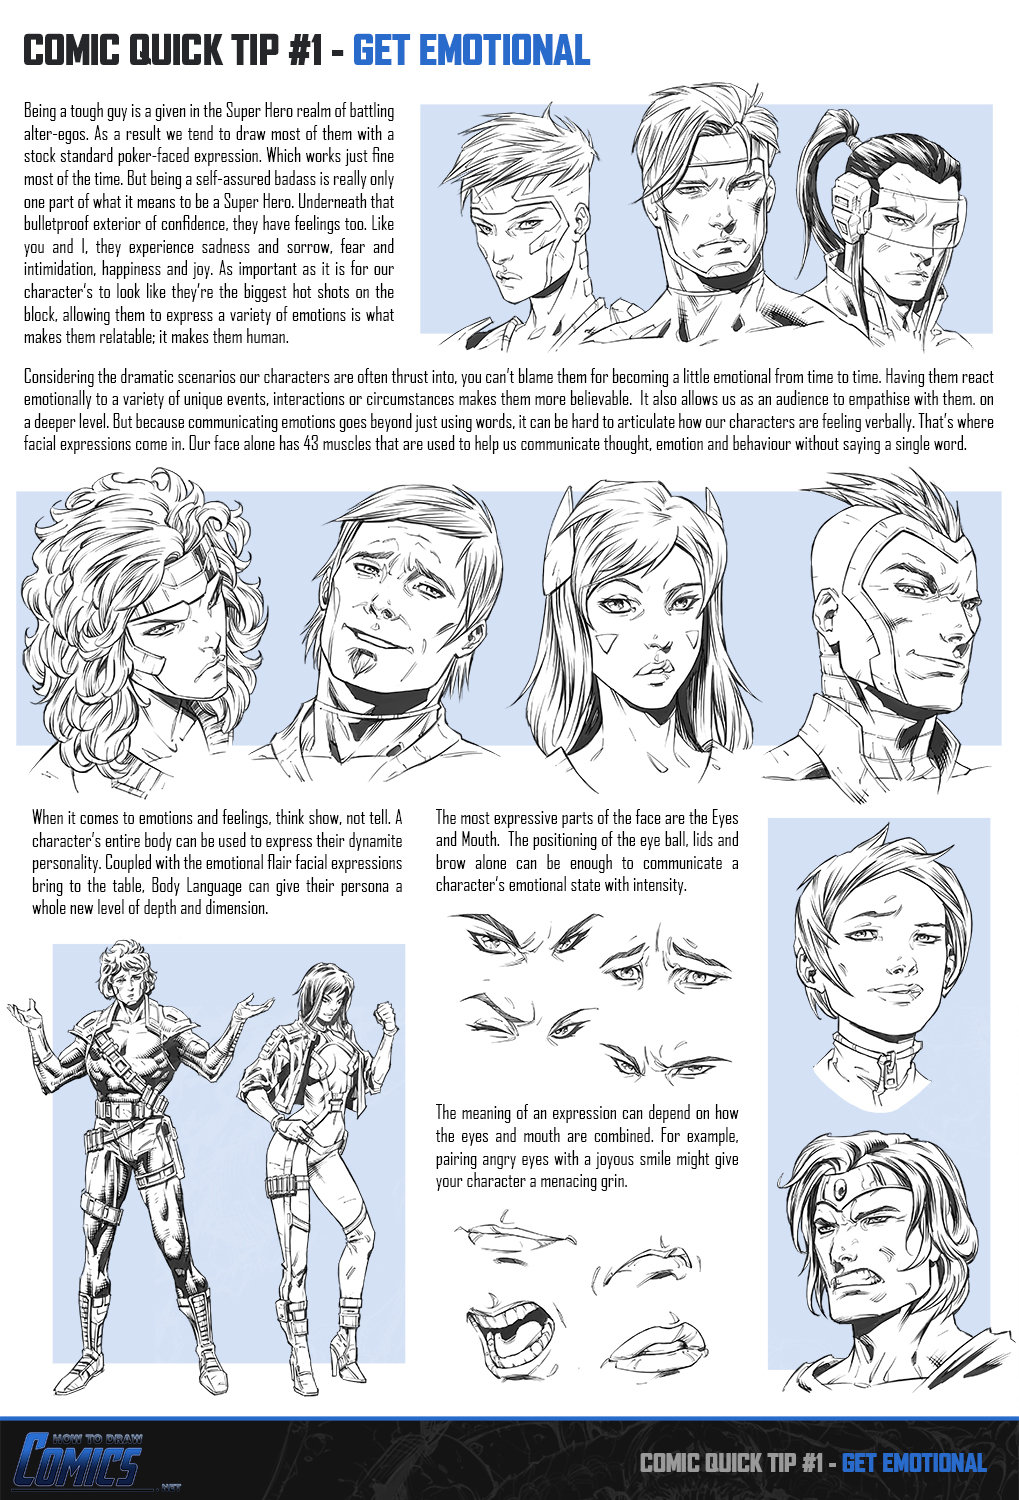 Comic Book Cover Tutorial Photo : Comic quick tip get emotional by claytonbarton on